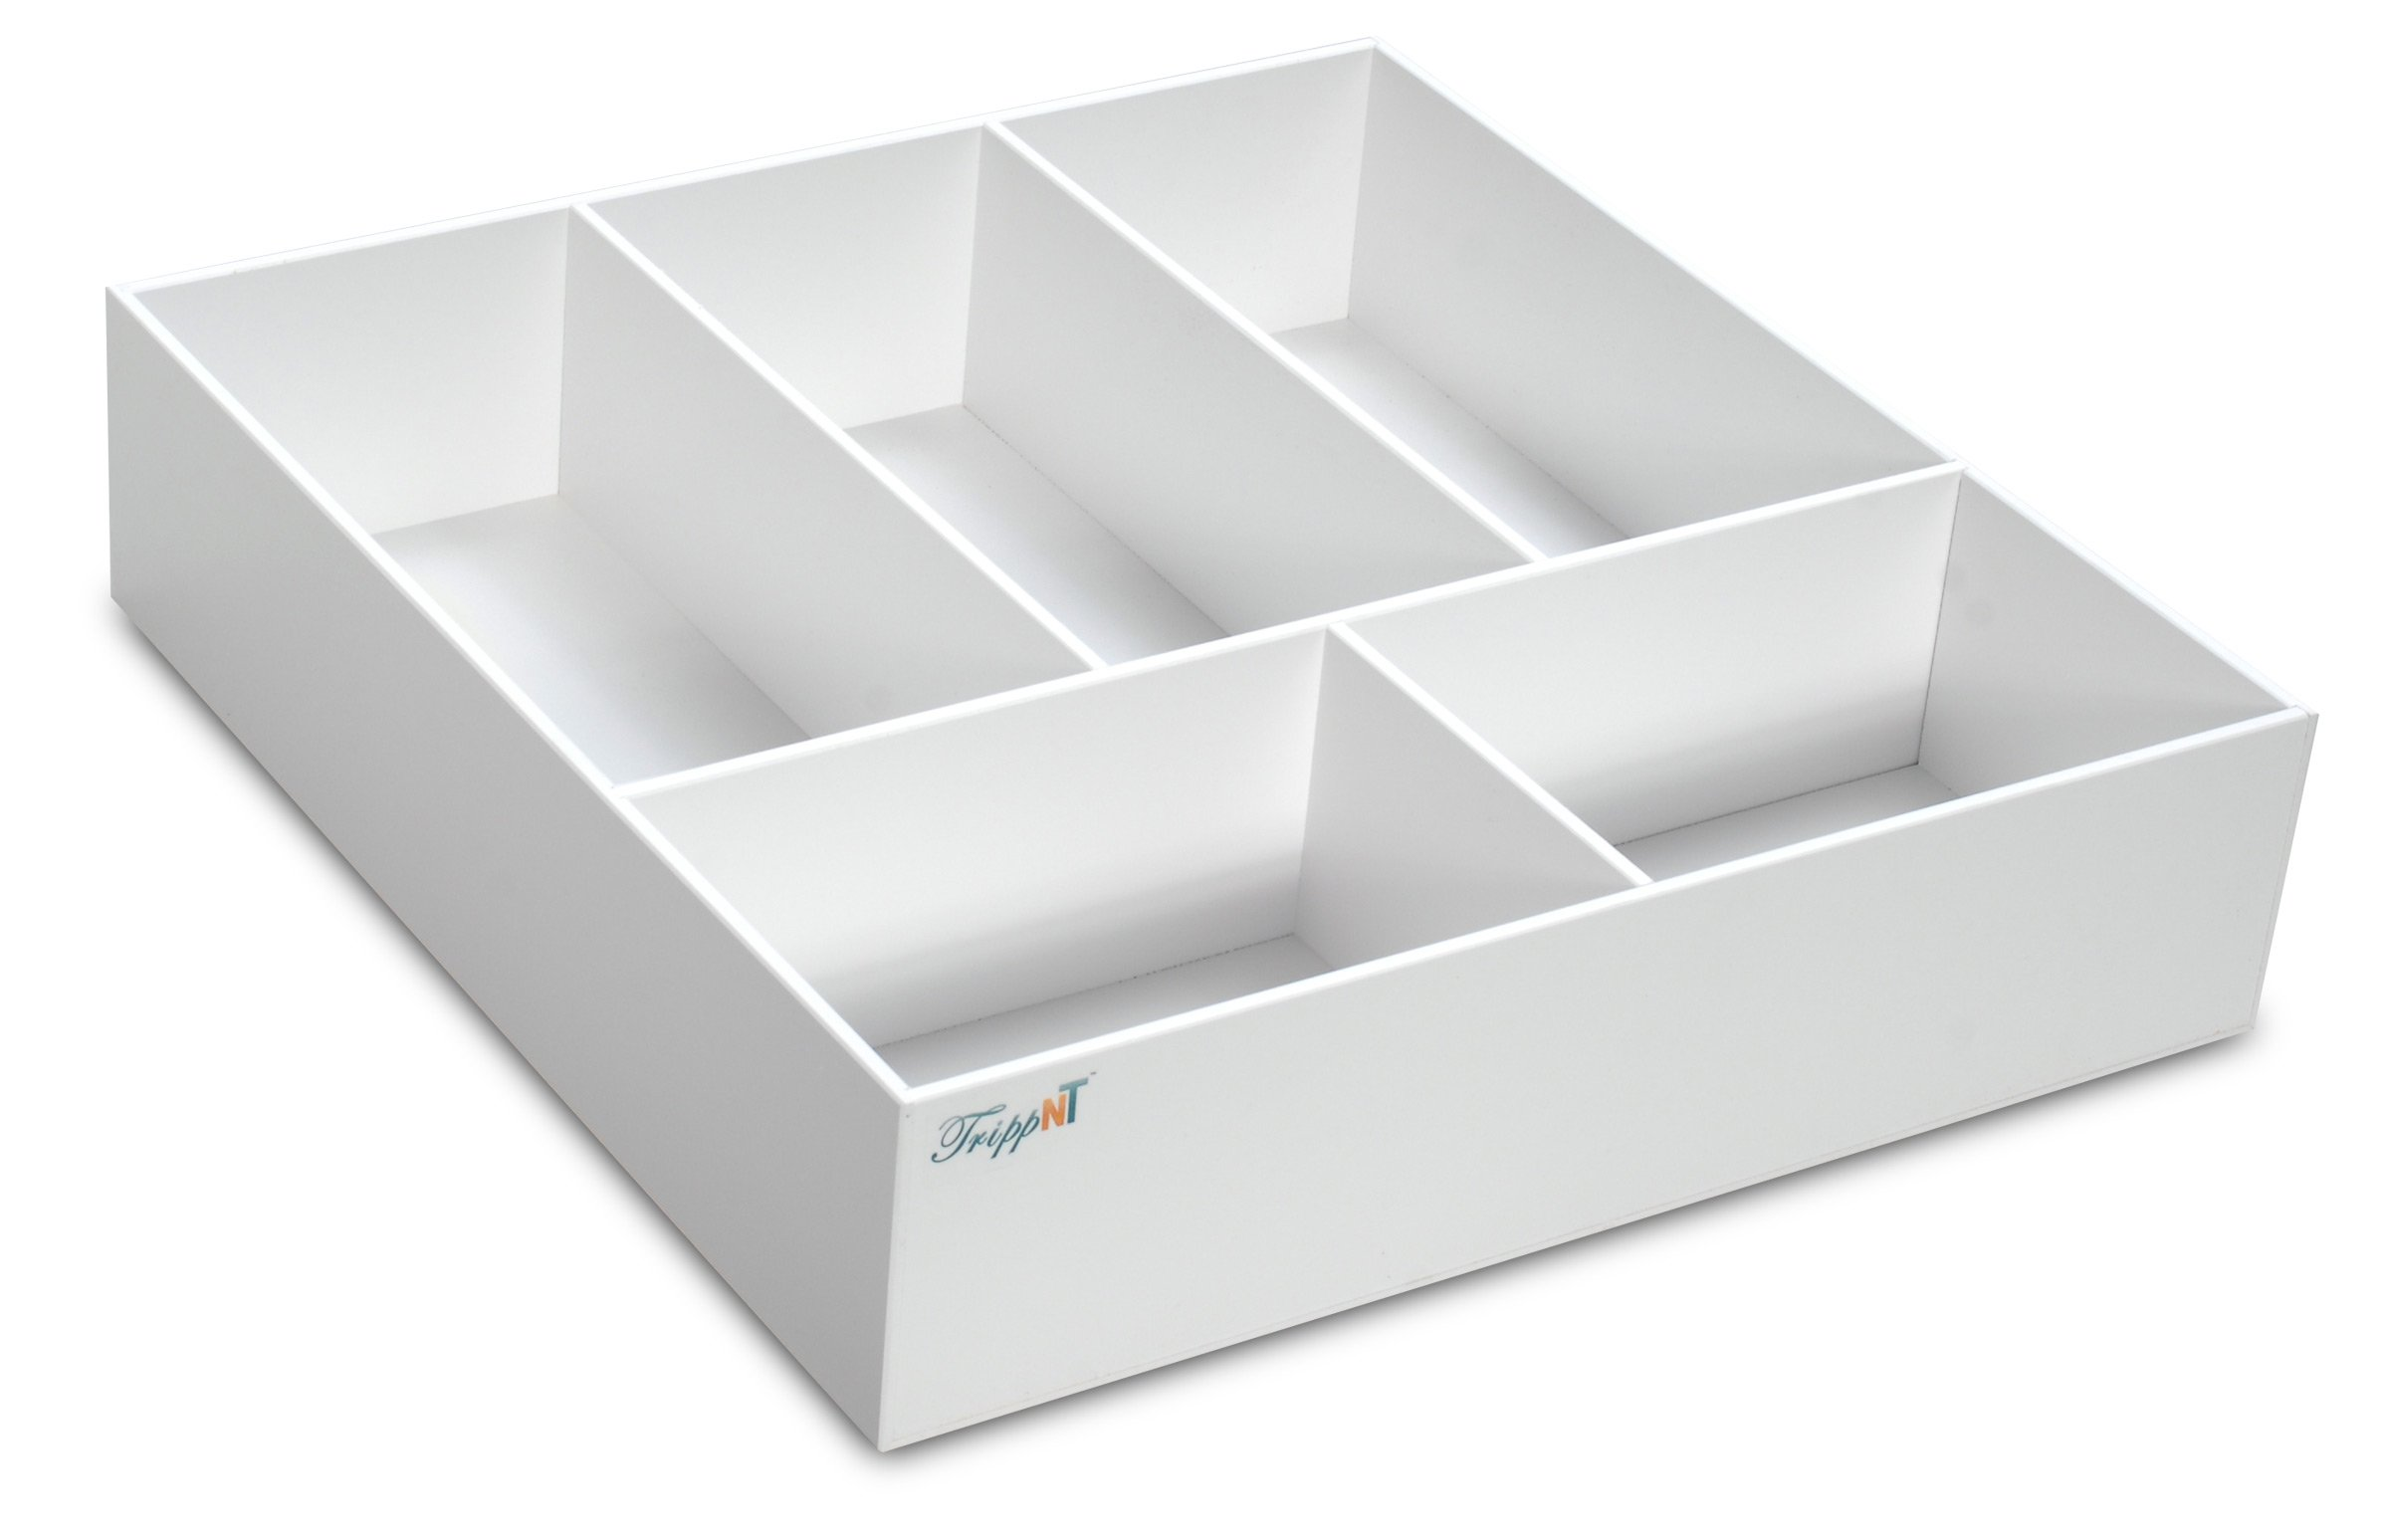 TrippNT 50068 White PVC Plastic 4'' Extra Deep Drawer Organizer, 5 Compartments, 17.5'' Width x 4'' Height x 19.5'' Depth